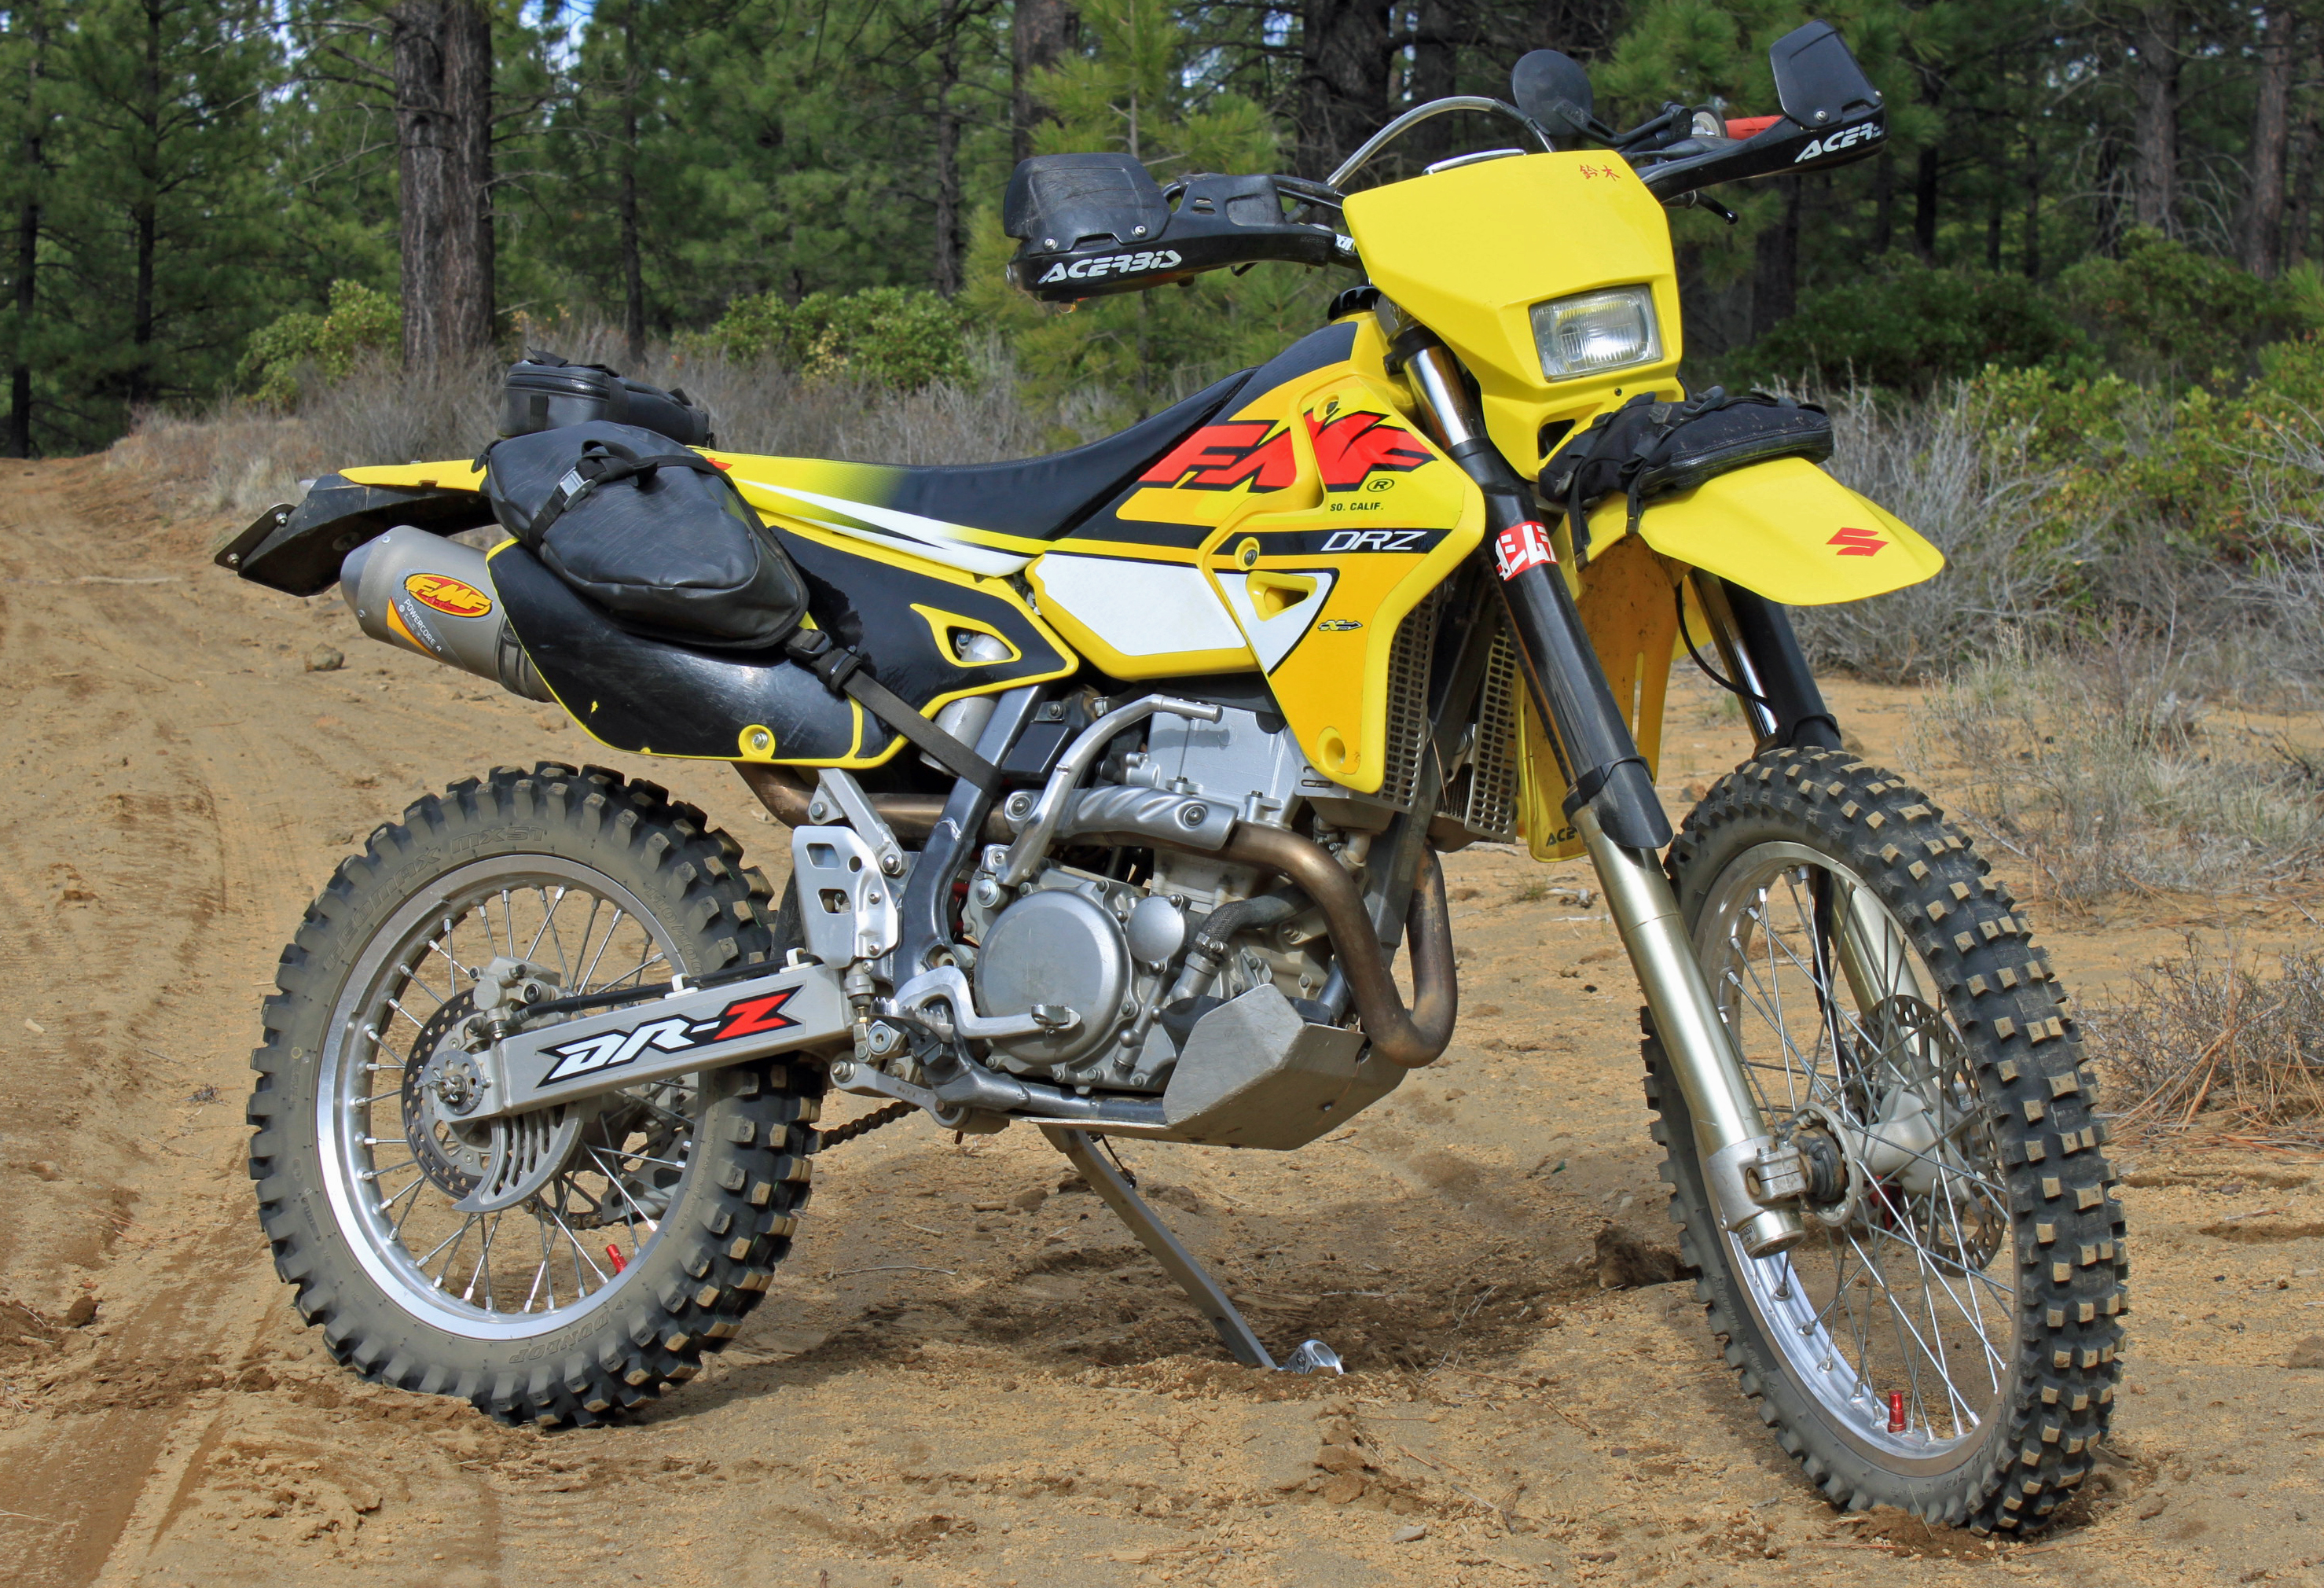 2001 suzuki drz 400 how to change oil